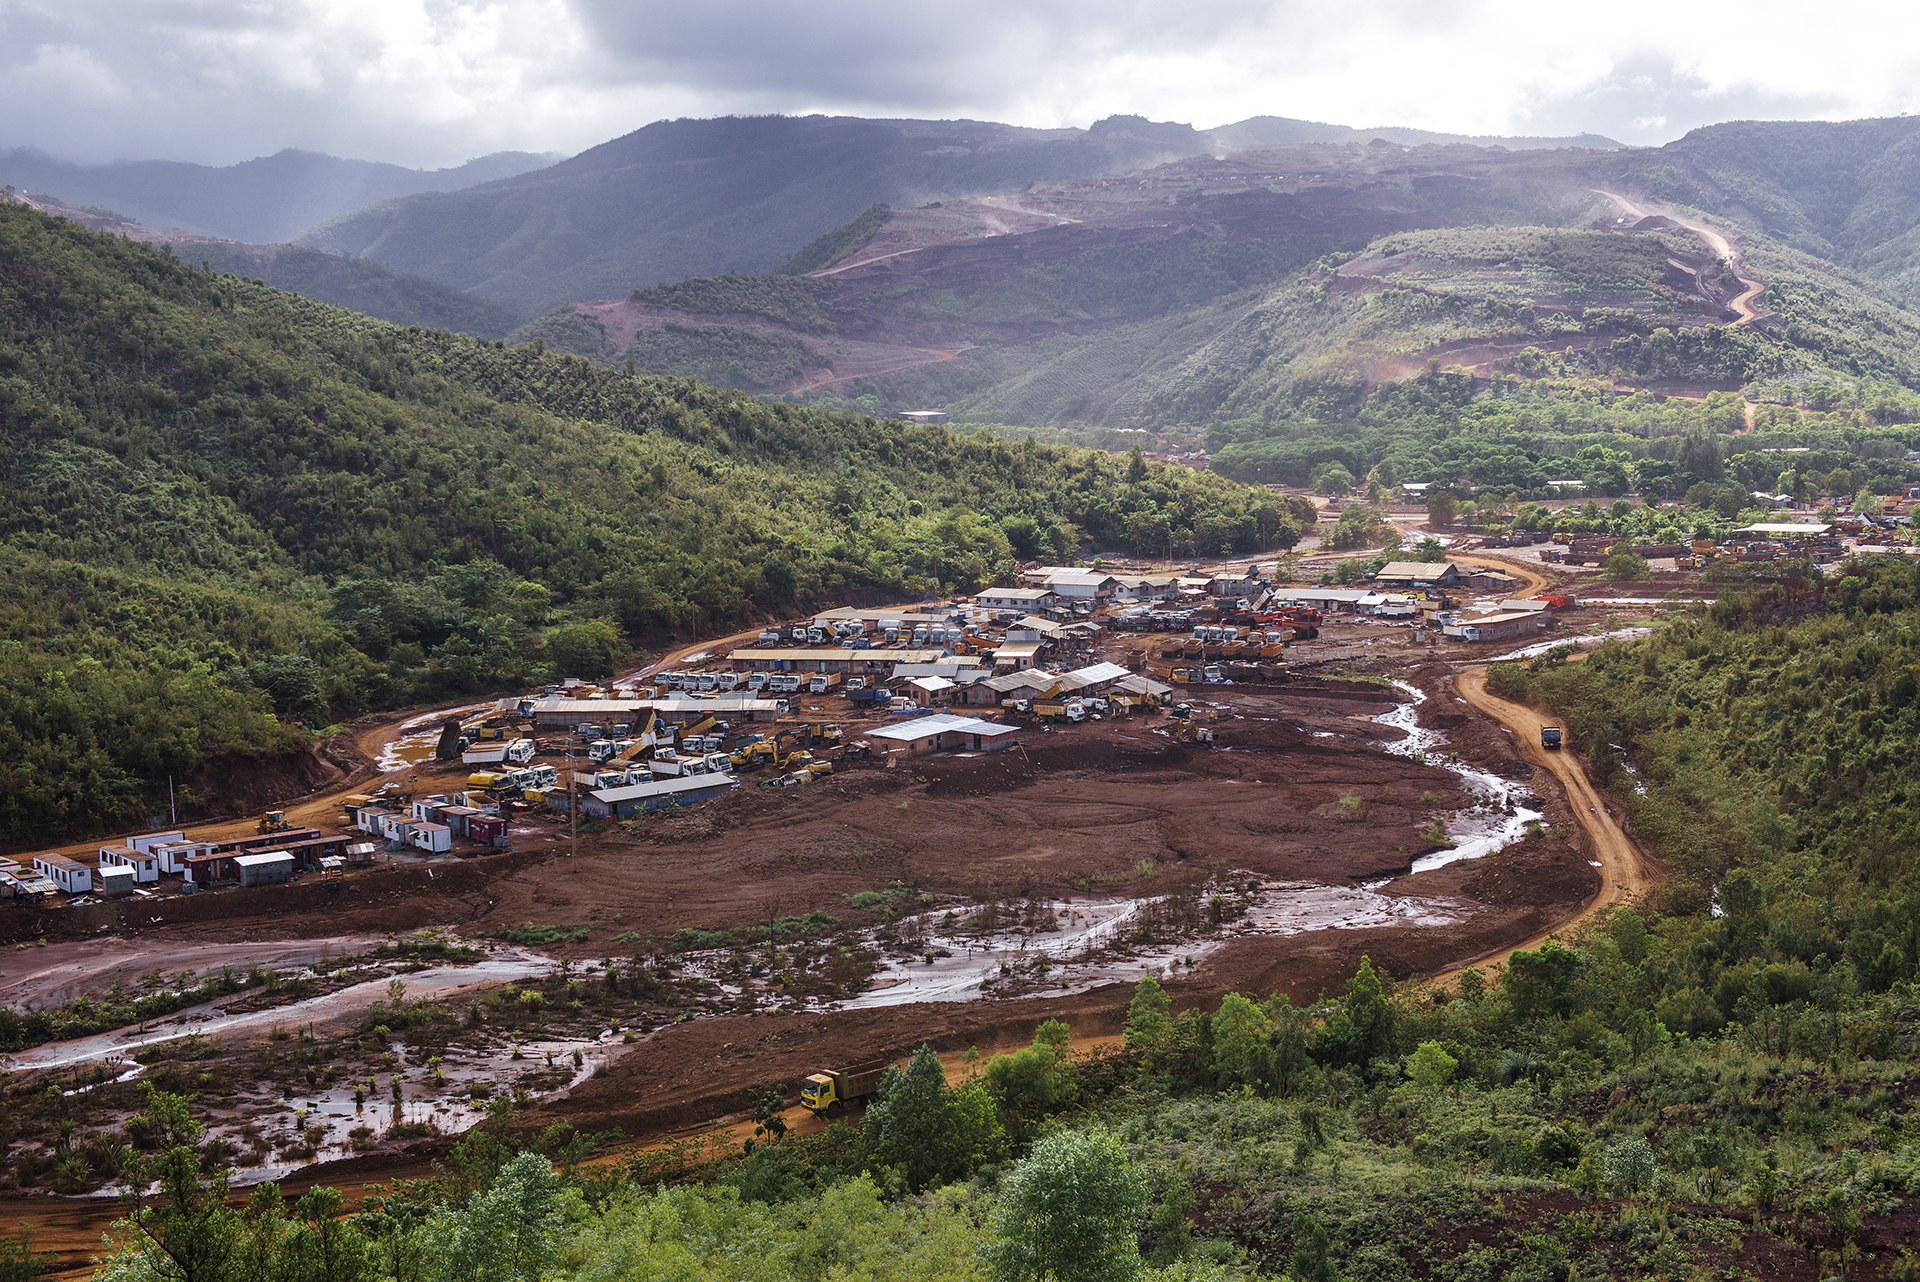 Trucks and heavy equipment stocking zone situated in a mining region of Surigao del Norte, Mindanao, Philippines, 04.2016